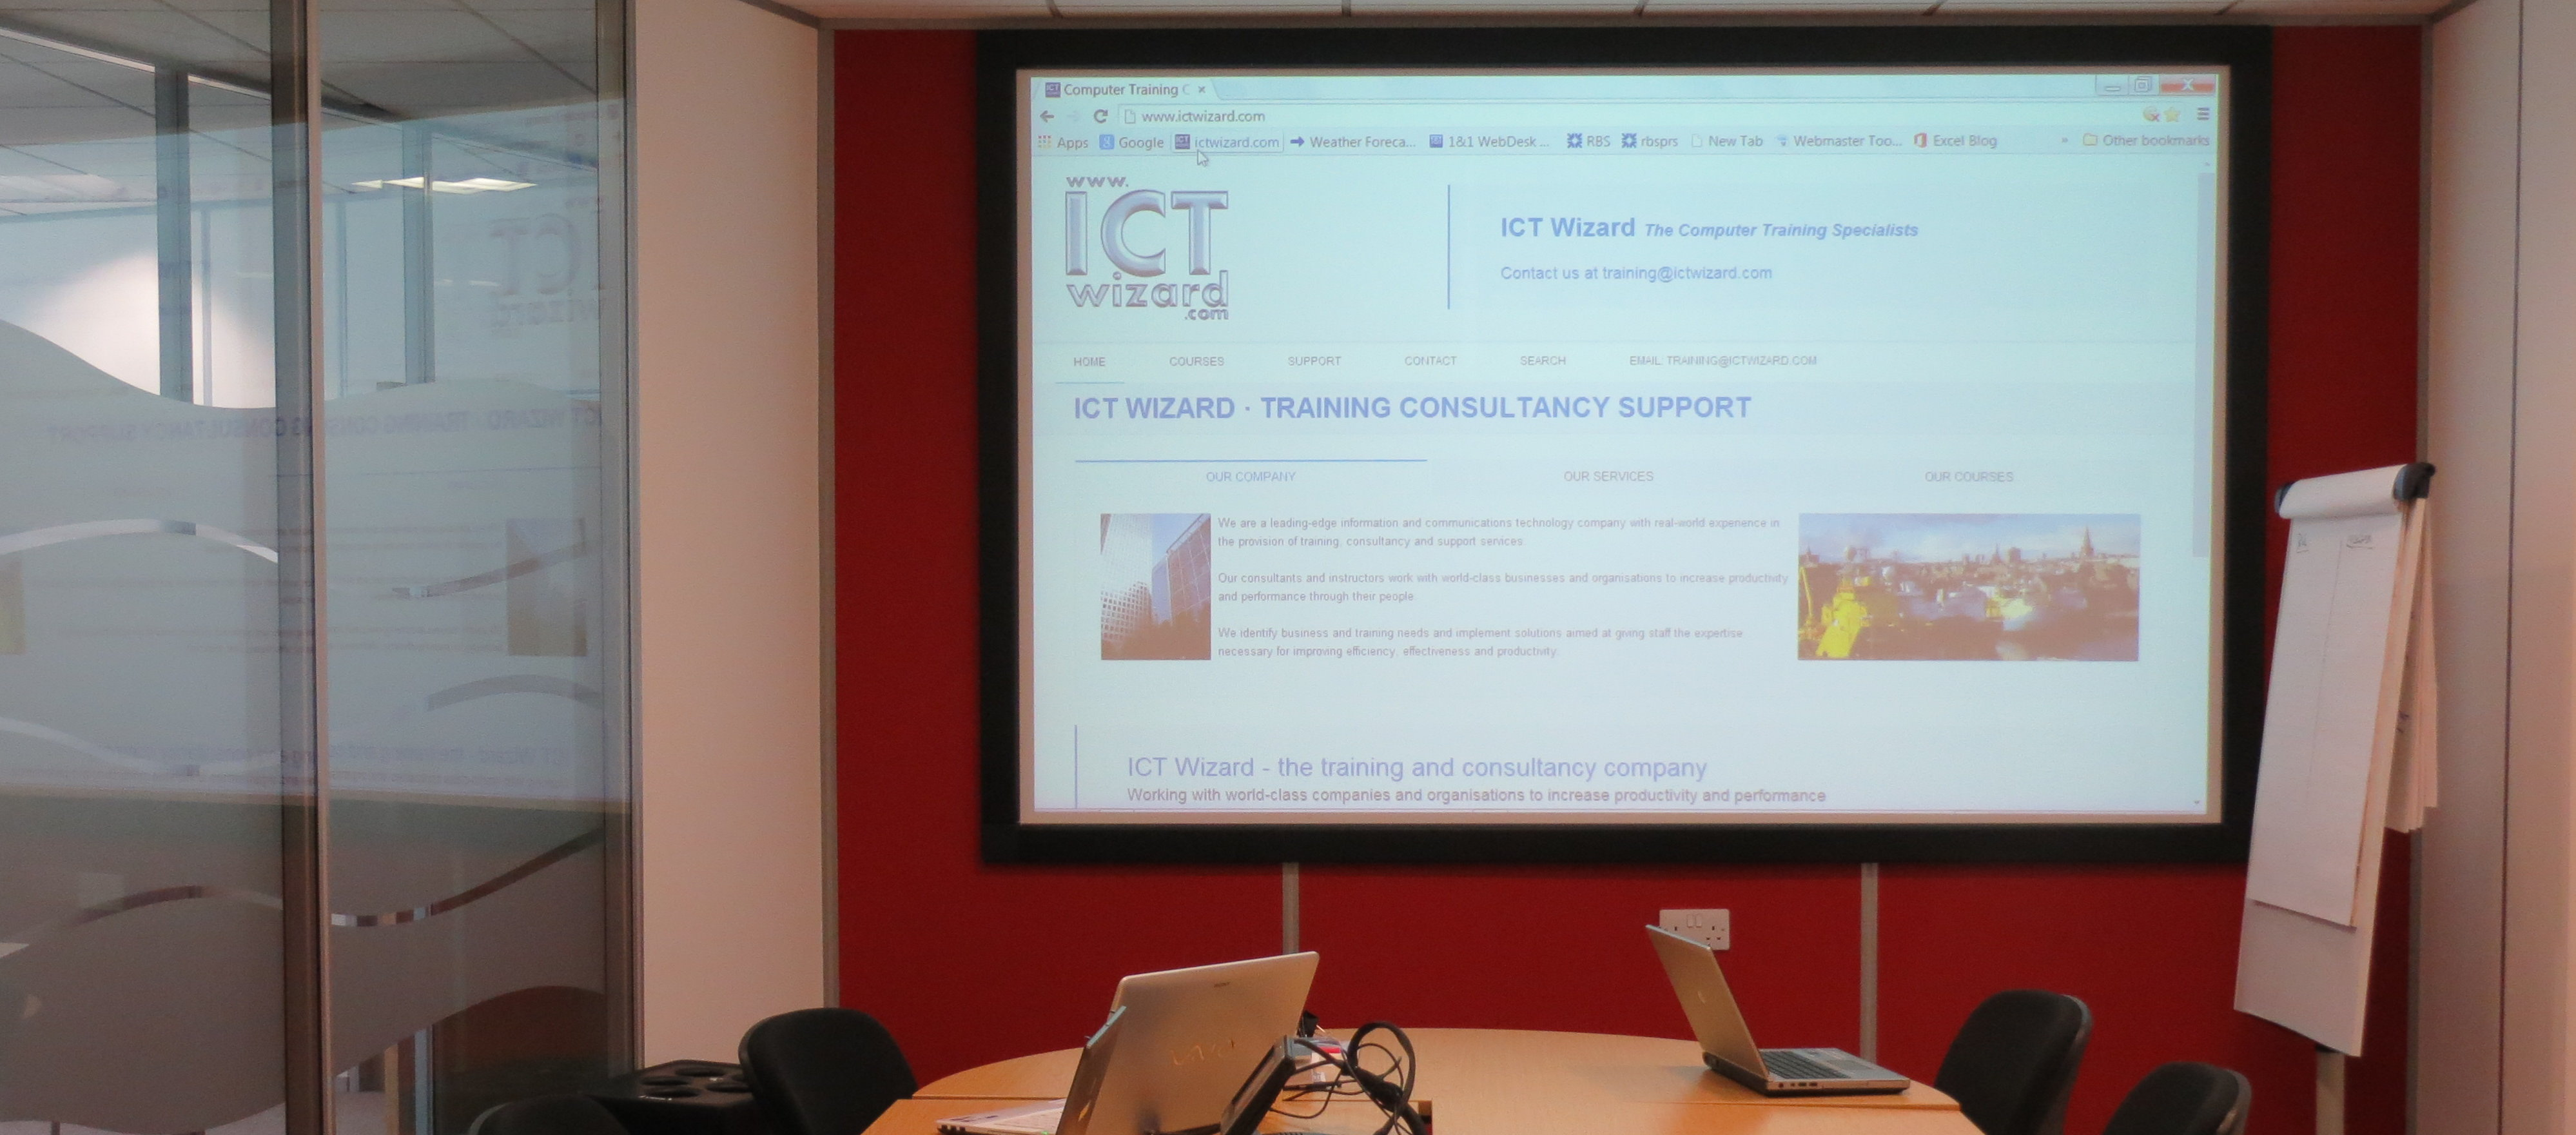 ICT Wizard courses onsite and offsite